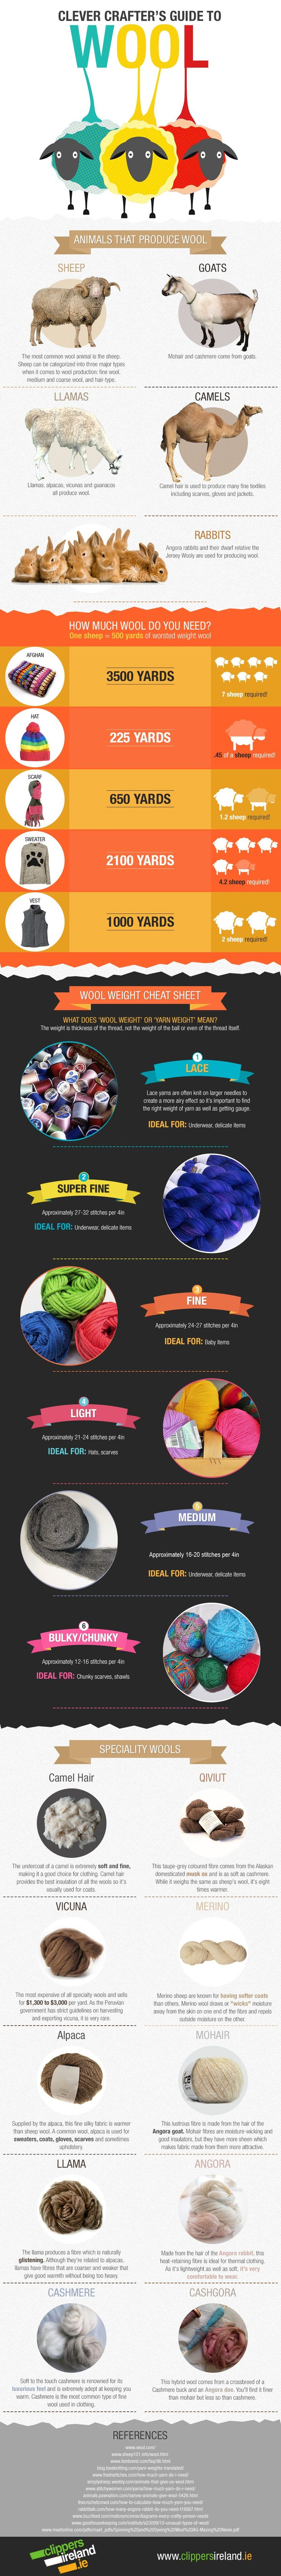 Crafting has become more popular than ever, as new waves of crafters begin to knit and crochet every day, turning to websites like yours for guidance. As Ireland's premier suppliers of sheep shearing equipment we love wool, and created this fun infographic entitled 'Clever Crafter's Guide to Wool'.In the graphic we have explored some statistics and facts about the world's wool, and highlight some rare and speciality wools in addition to wool tips for crafters.